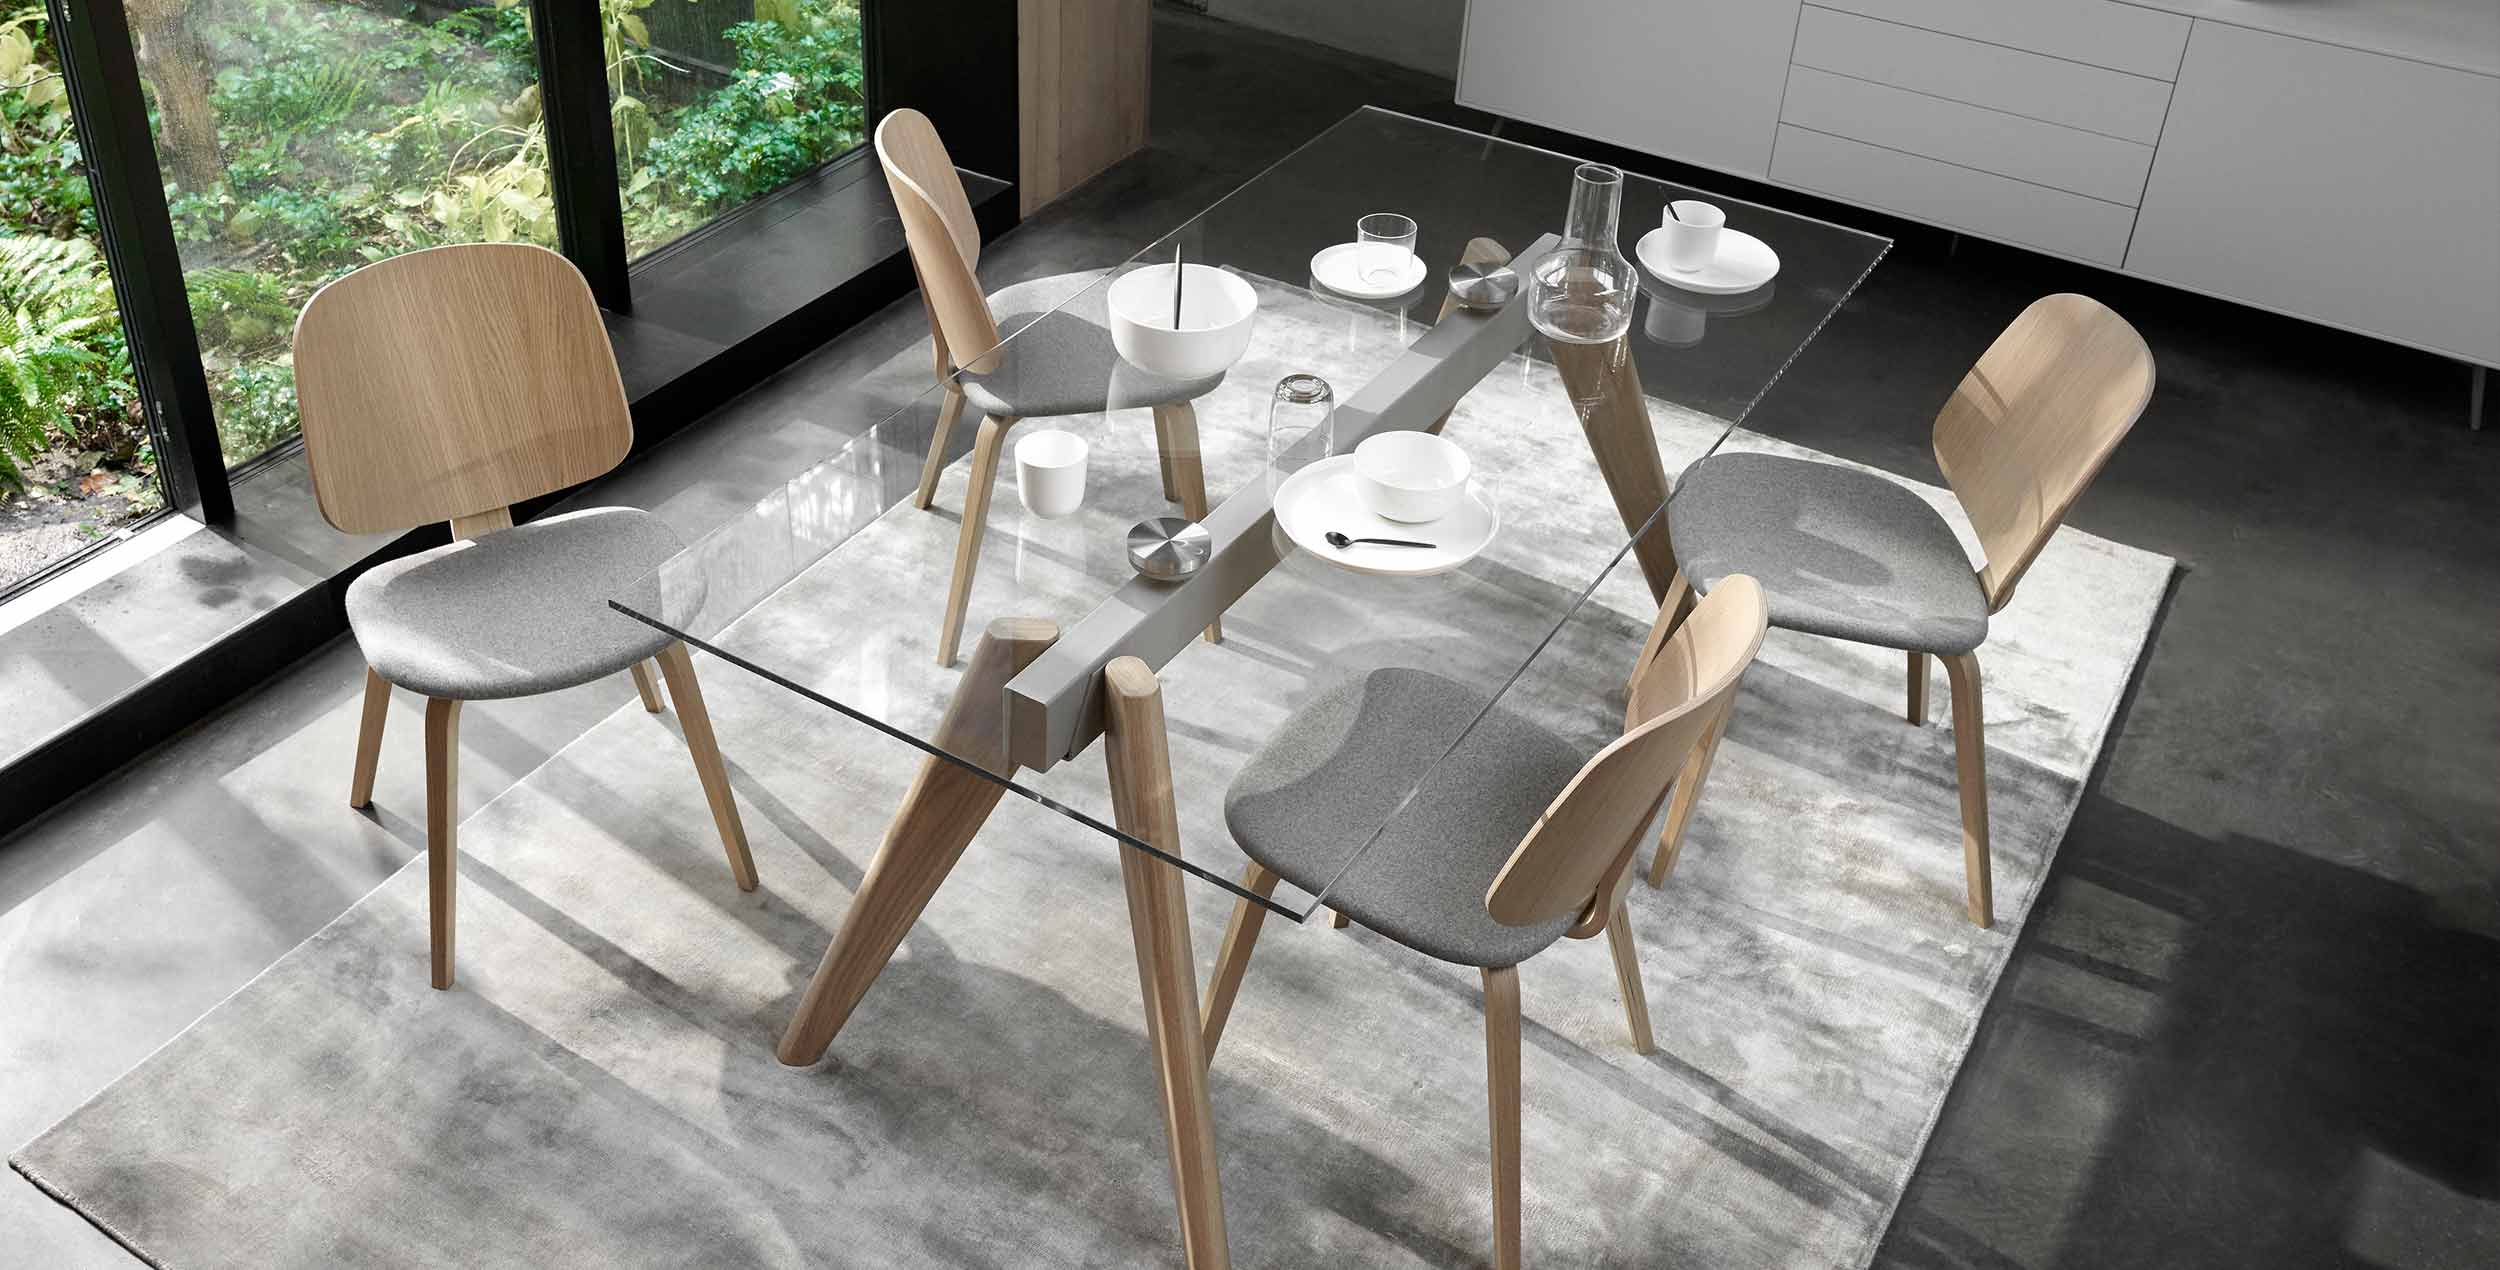 Monza dining tables and dining chairs